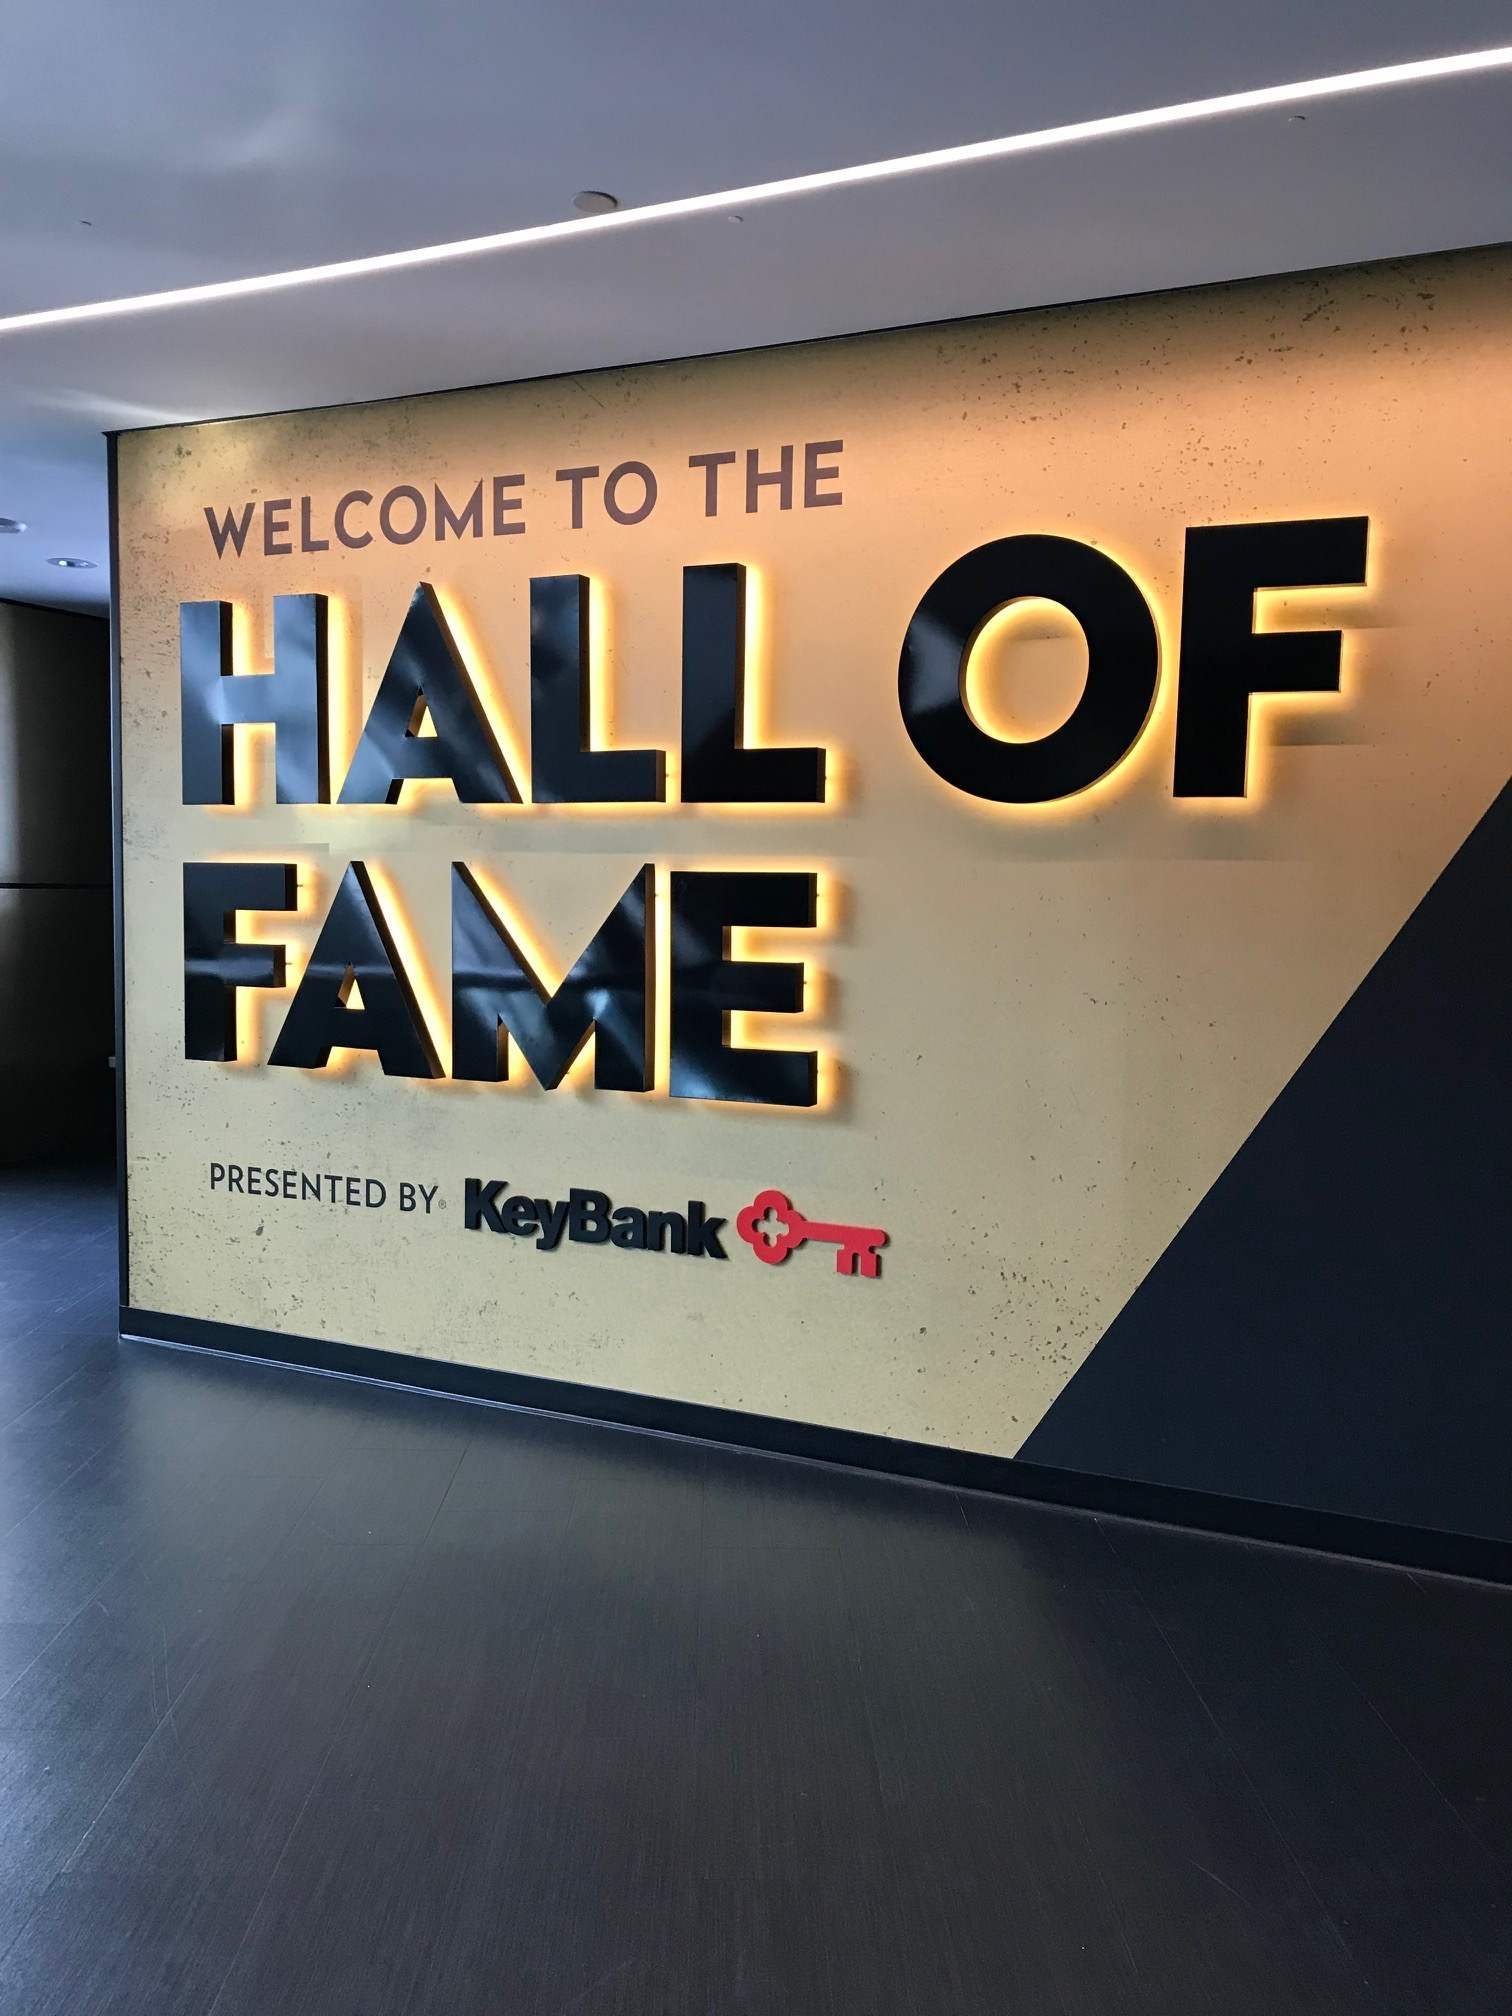 1Hall of Fame sign